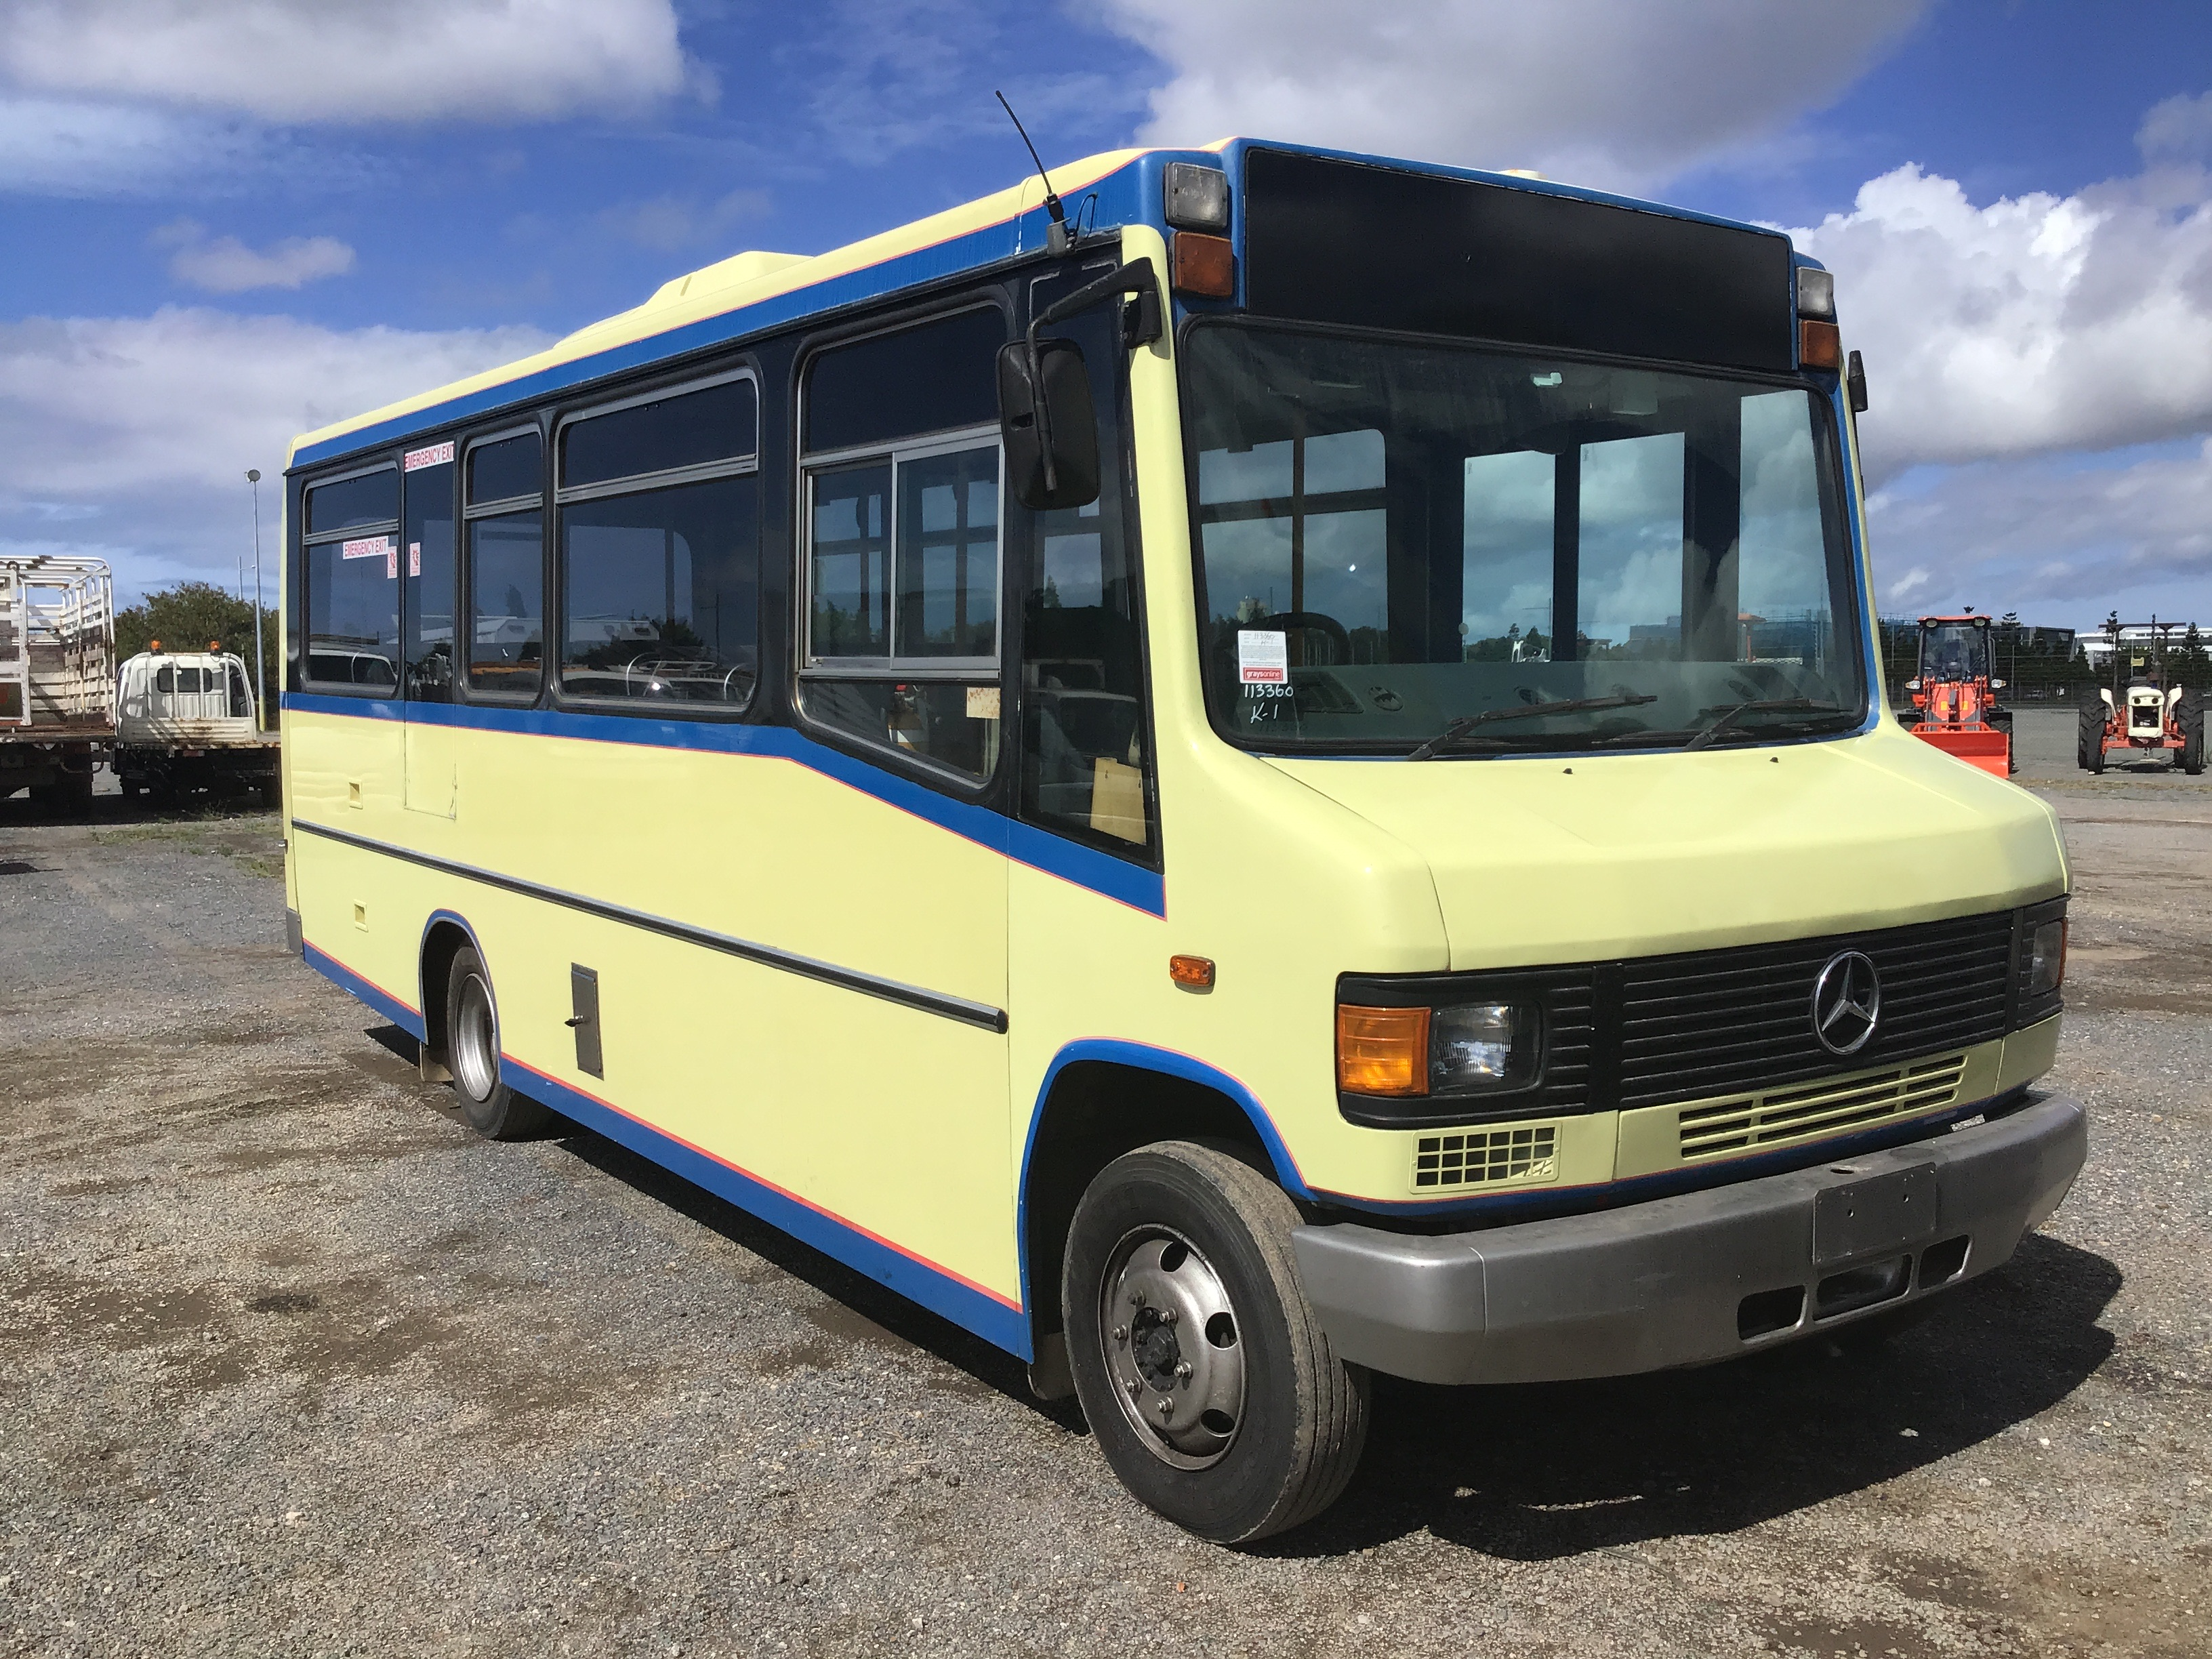 1995 Mercedes Benz L0 812/42 4 x 2 Bus